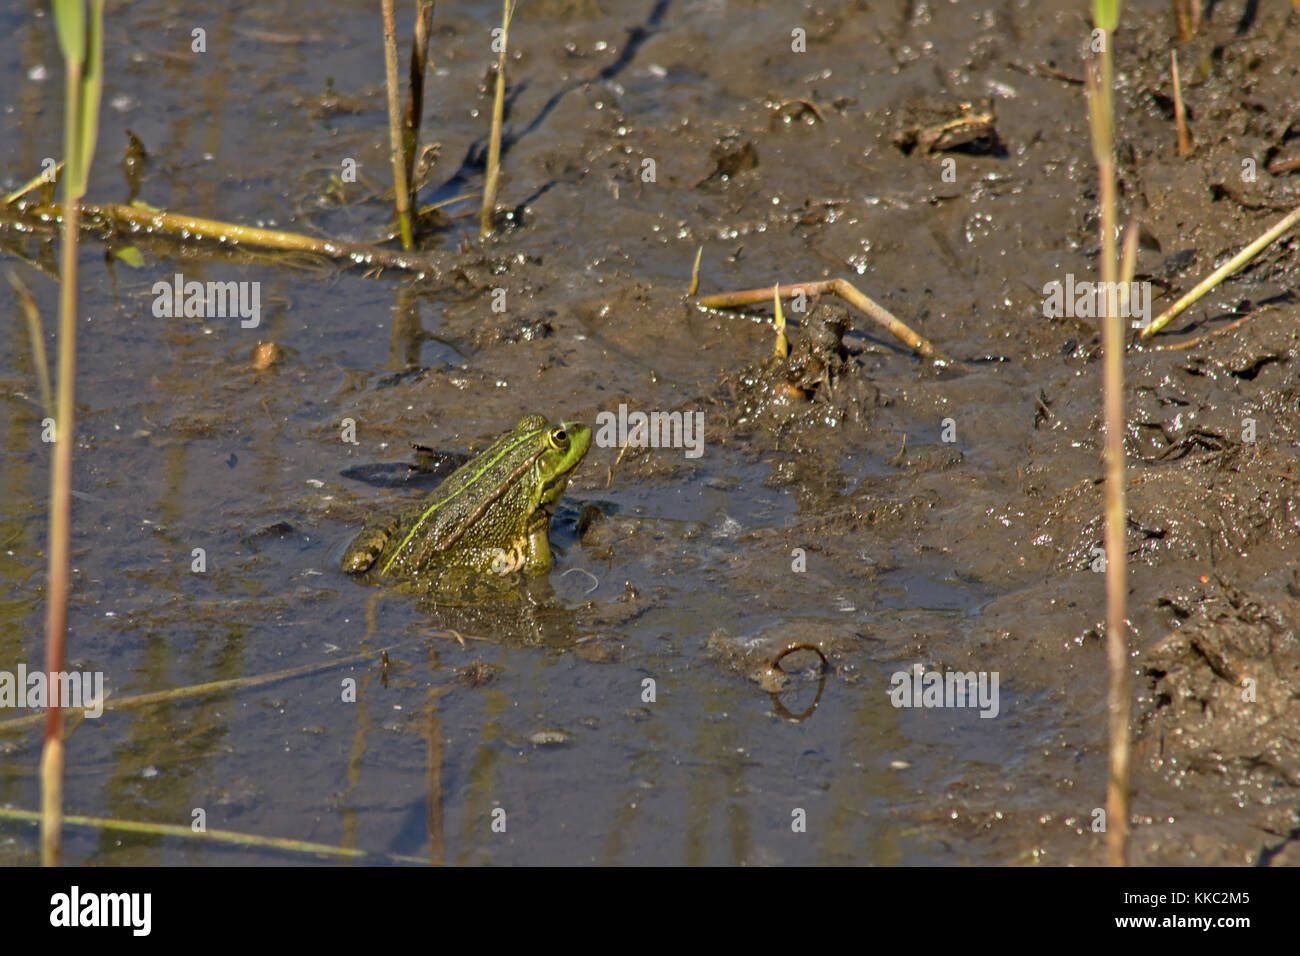 Green frog with big eyes sitting in a pond in Bourgoyen nature reserve, Ghent, flanders - Anura - Stock Image